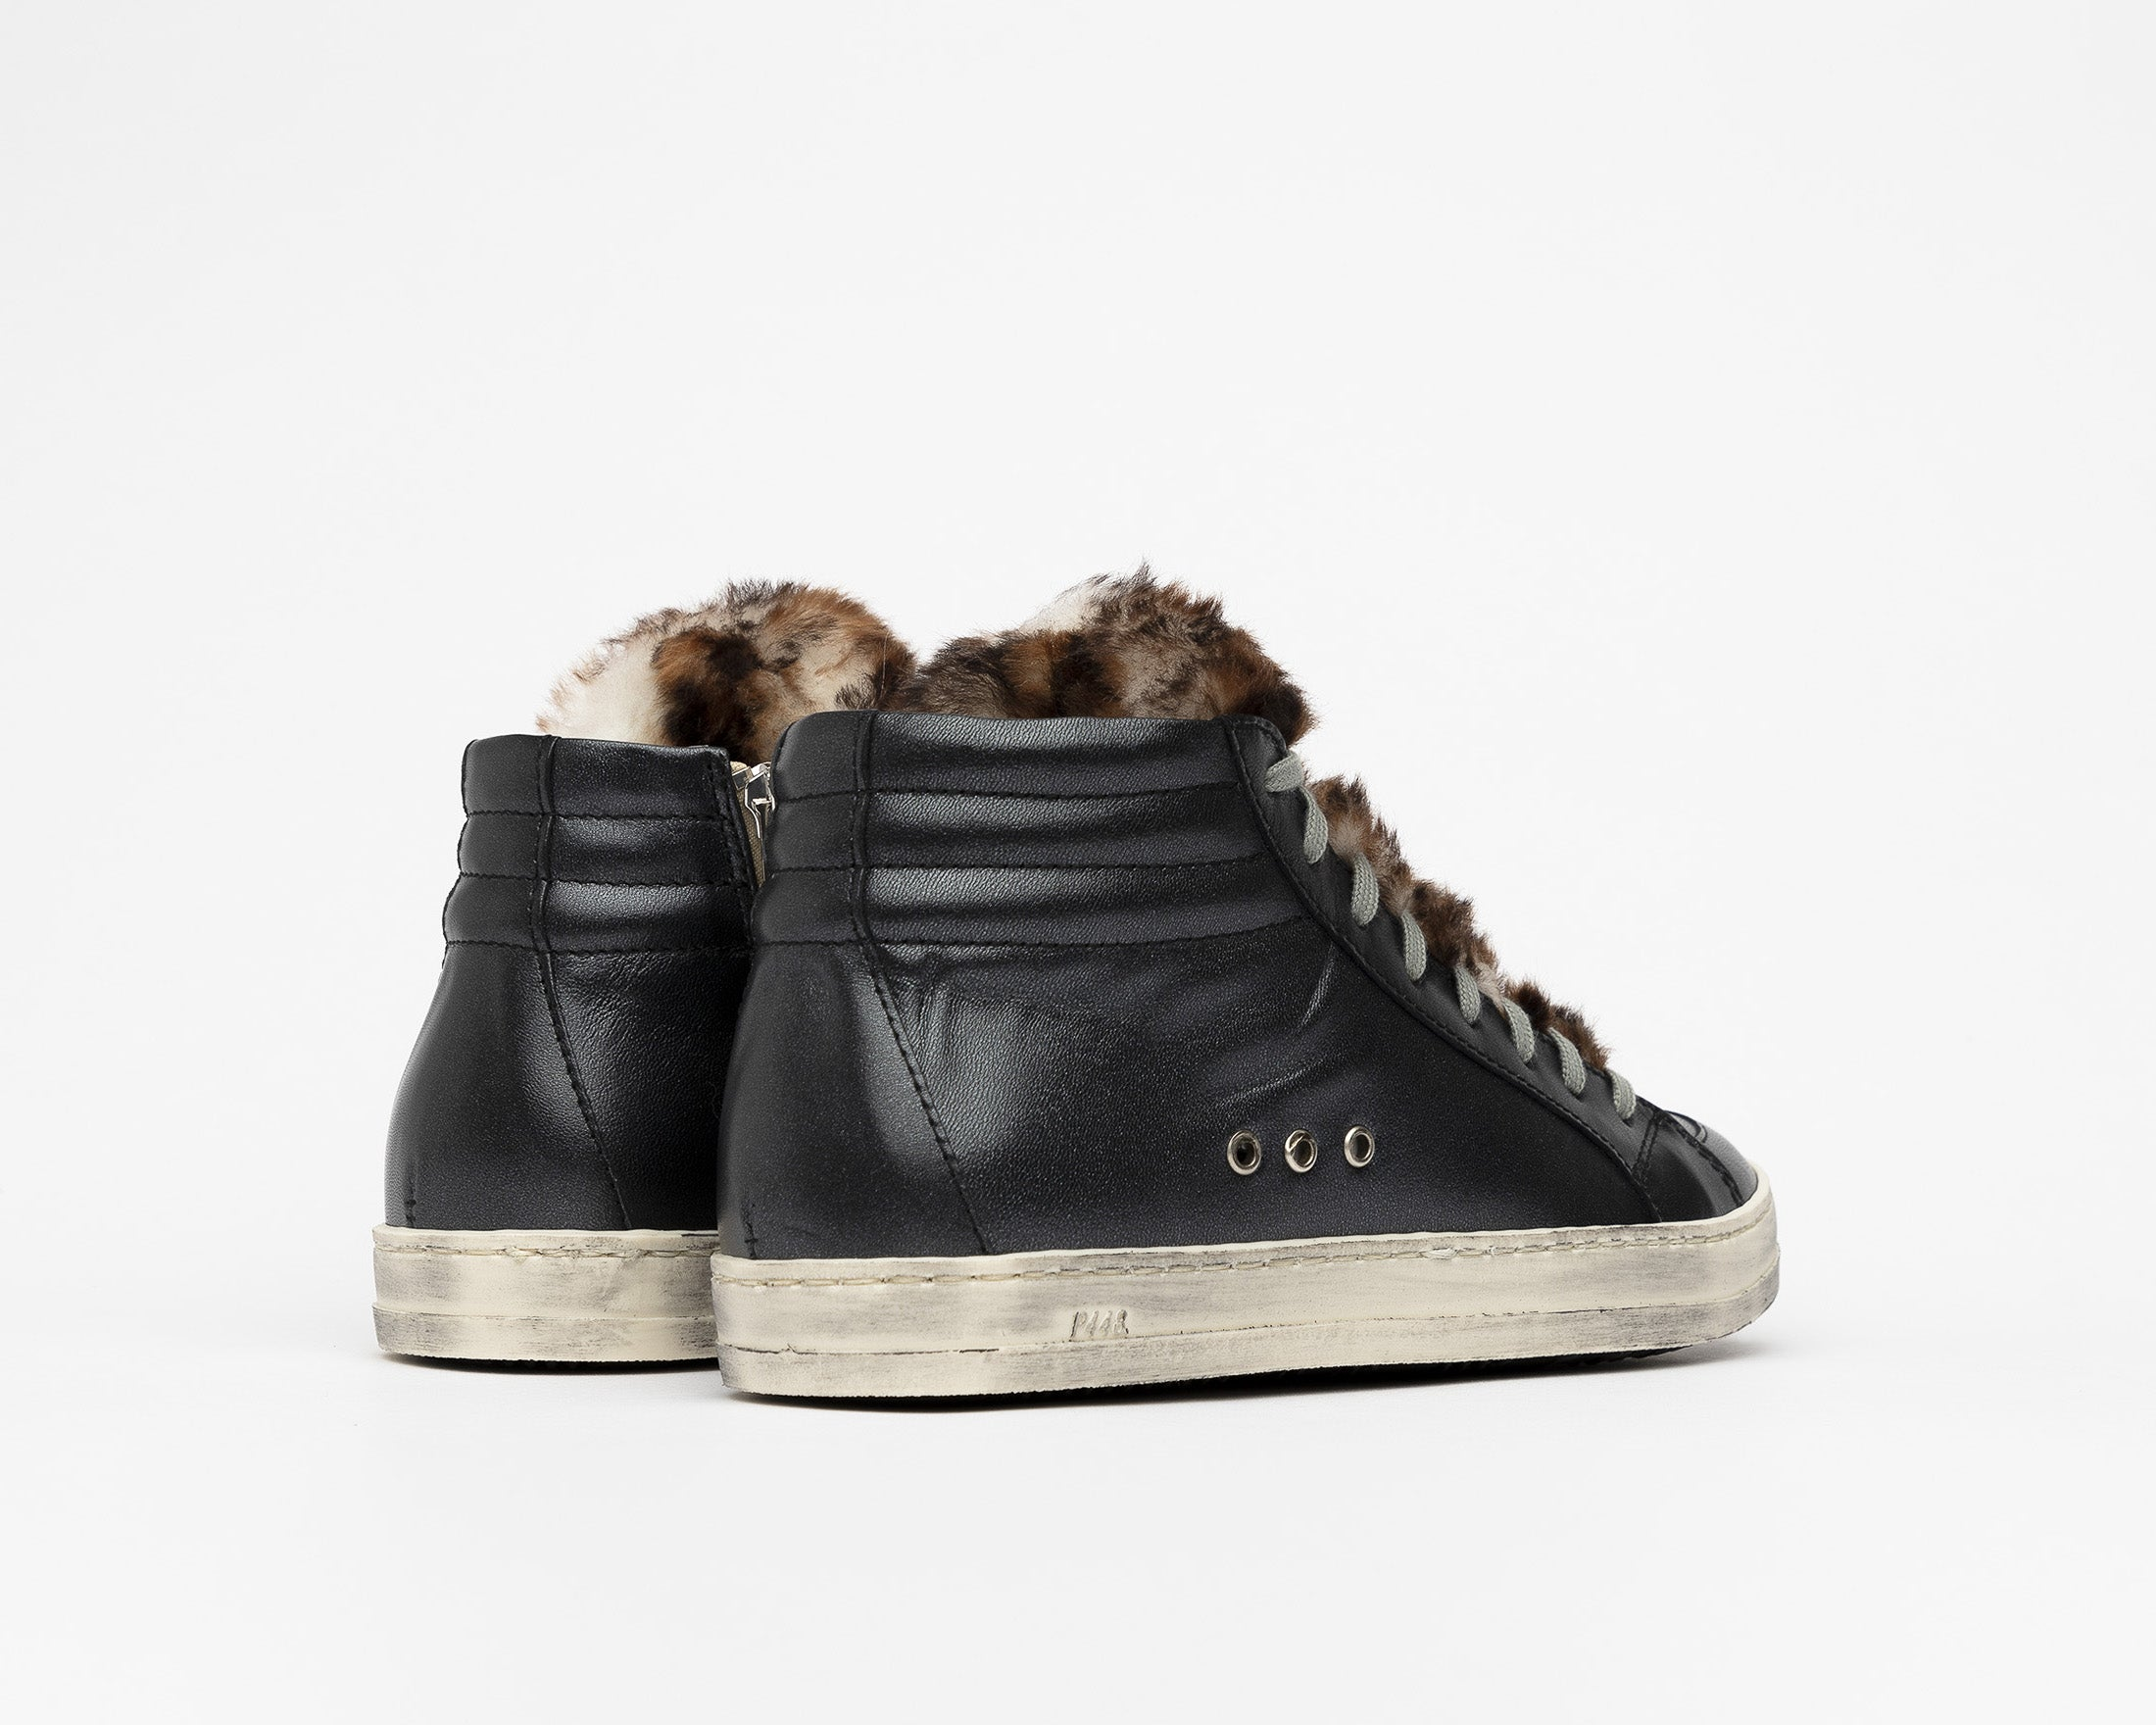 Skate High-Top Sneaker in Leopard Fur - Botom